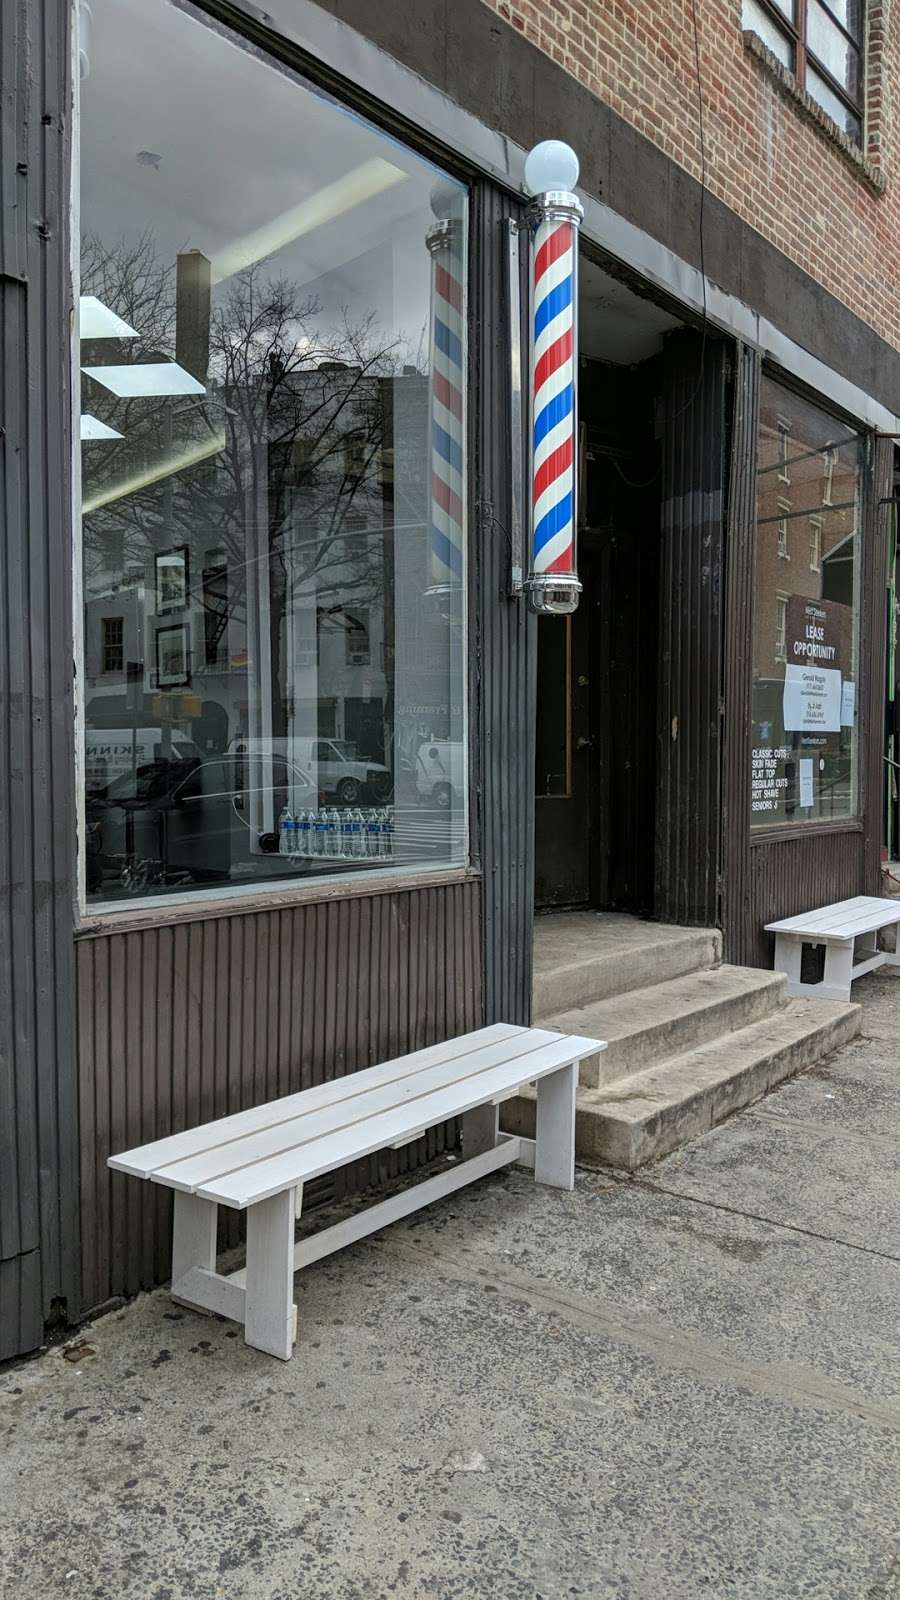 West Village Barber Shop - hair care  | Photo 3 of 6 | Address: 131 Christopher St, New York, NY 10014, USA | Phone: (212) 243-3686